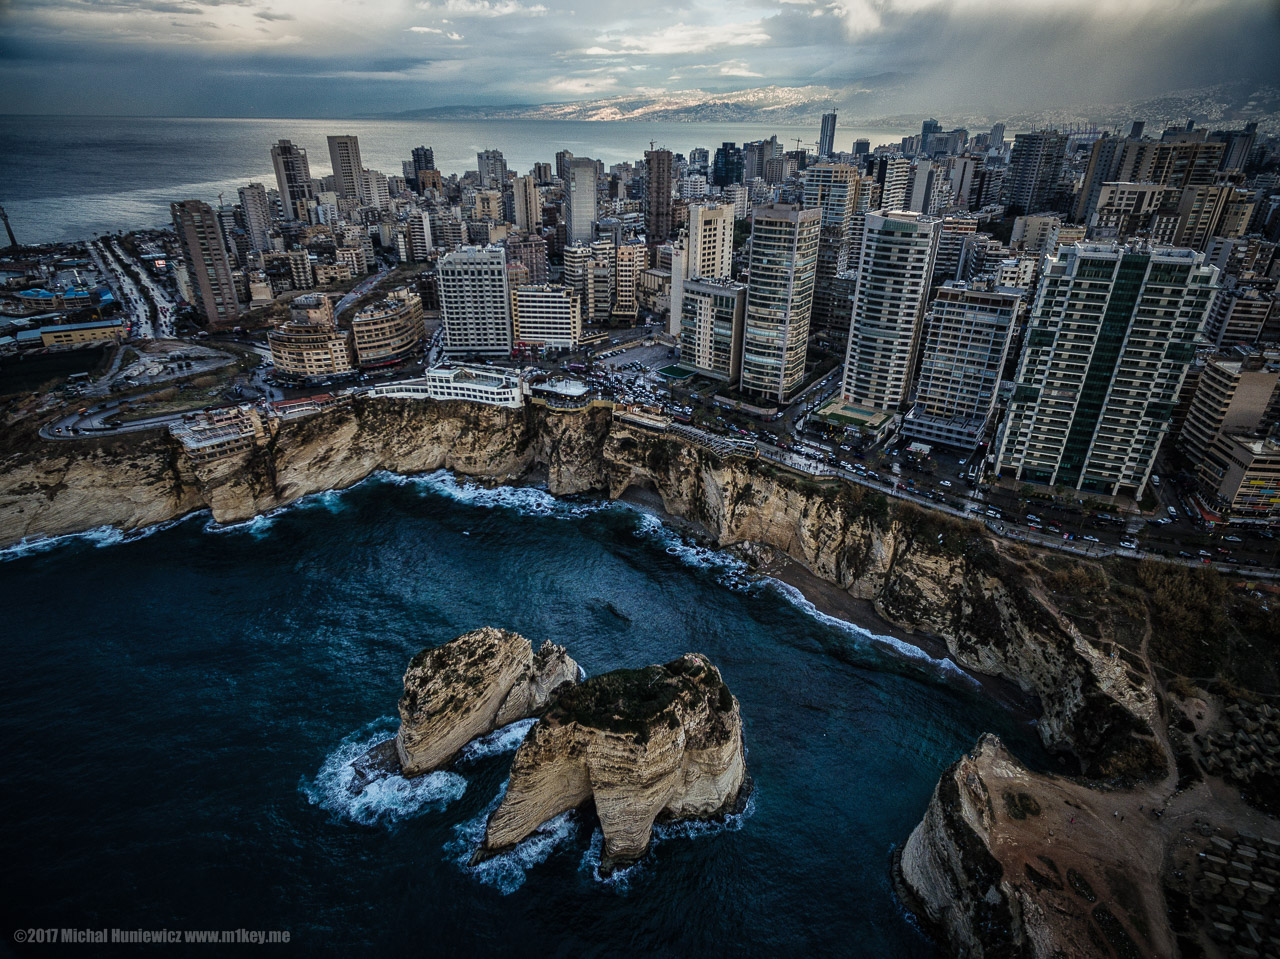 Bourdain's favourite cities - Beirut, Lebanon - photo by Michał Huniewicz under CC BY 2.0